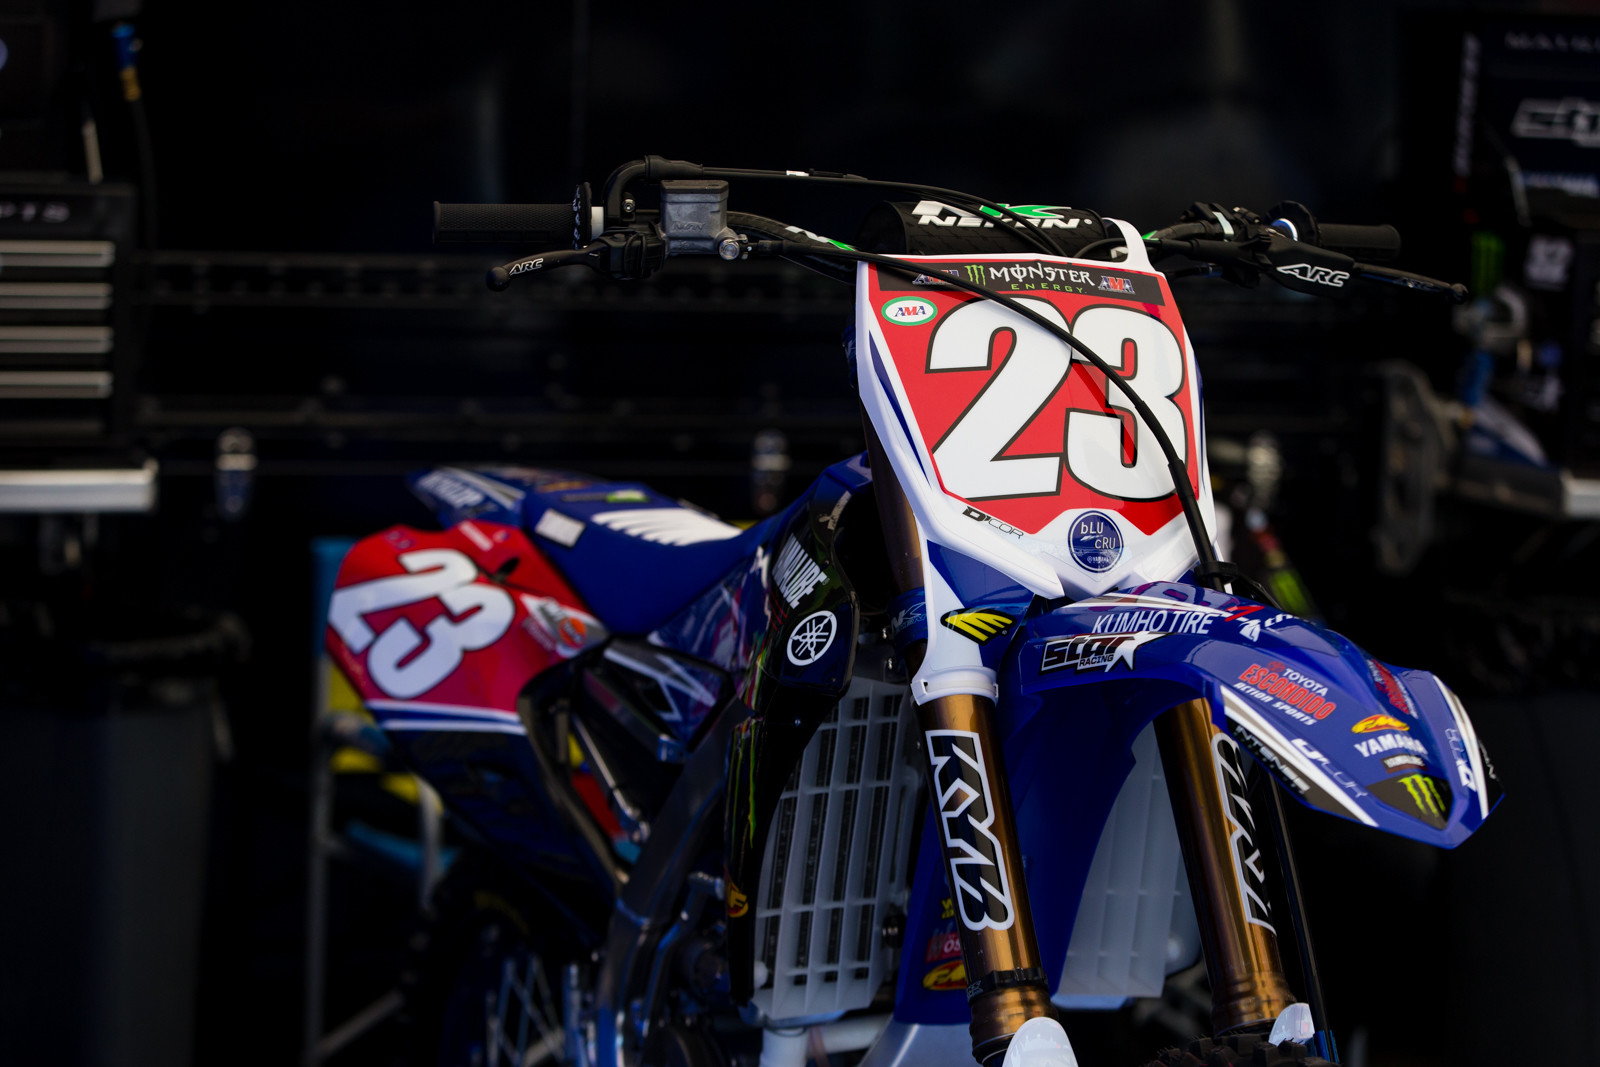 Aaron Plessinger's Monster Energy/Yamalube Star Racing YZ250F looks pretty good with a splash of red.